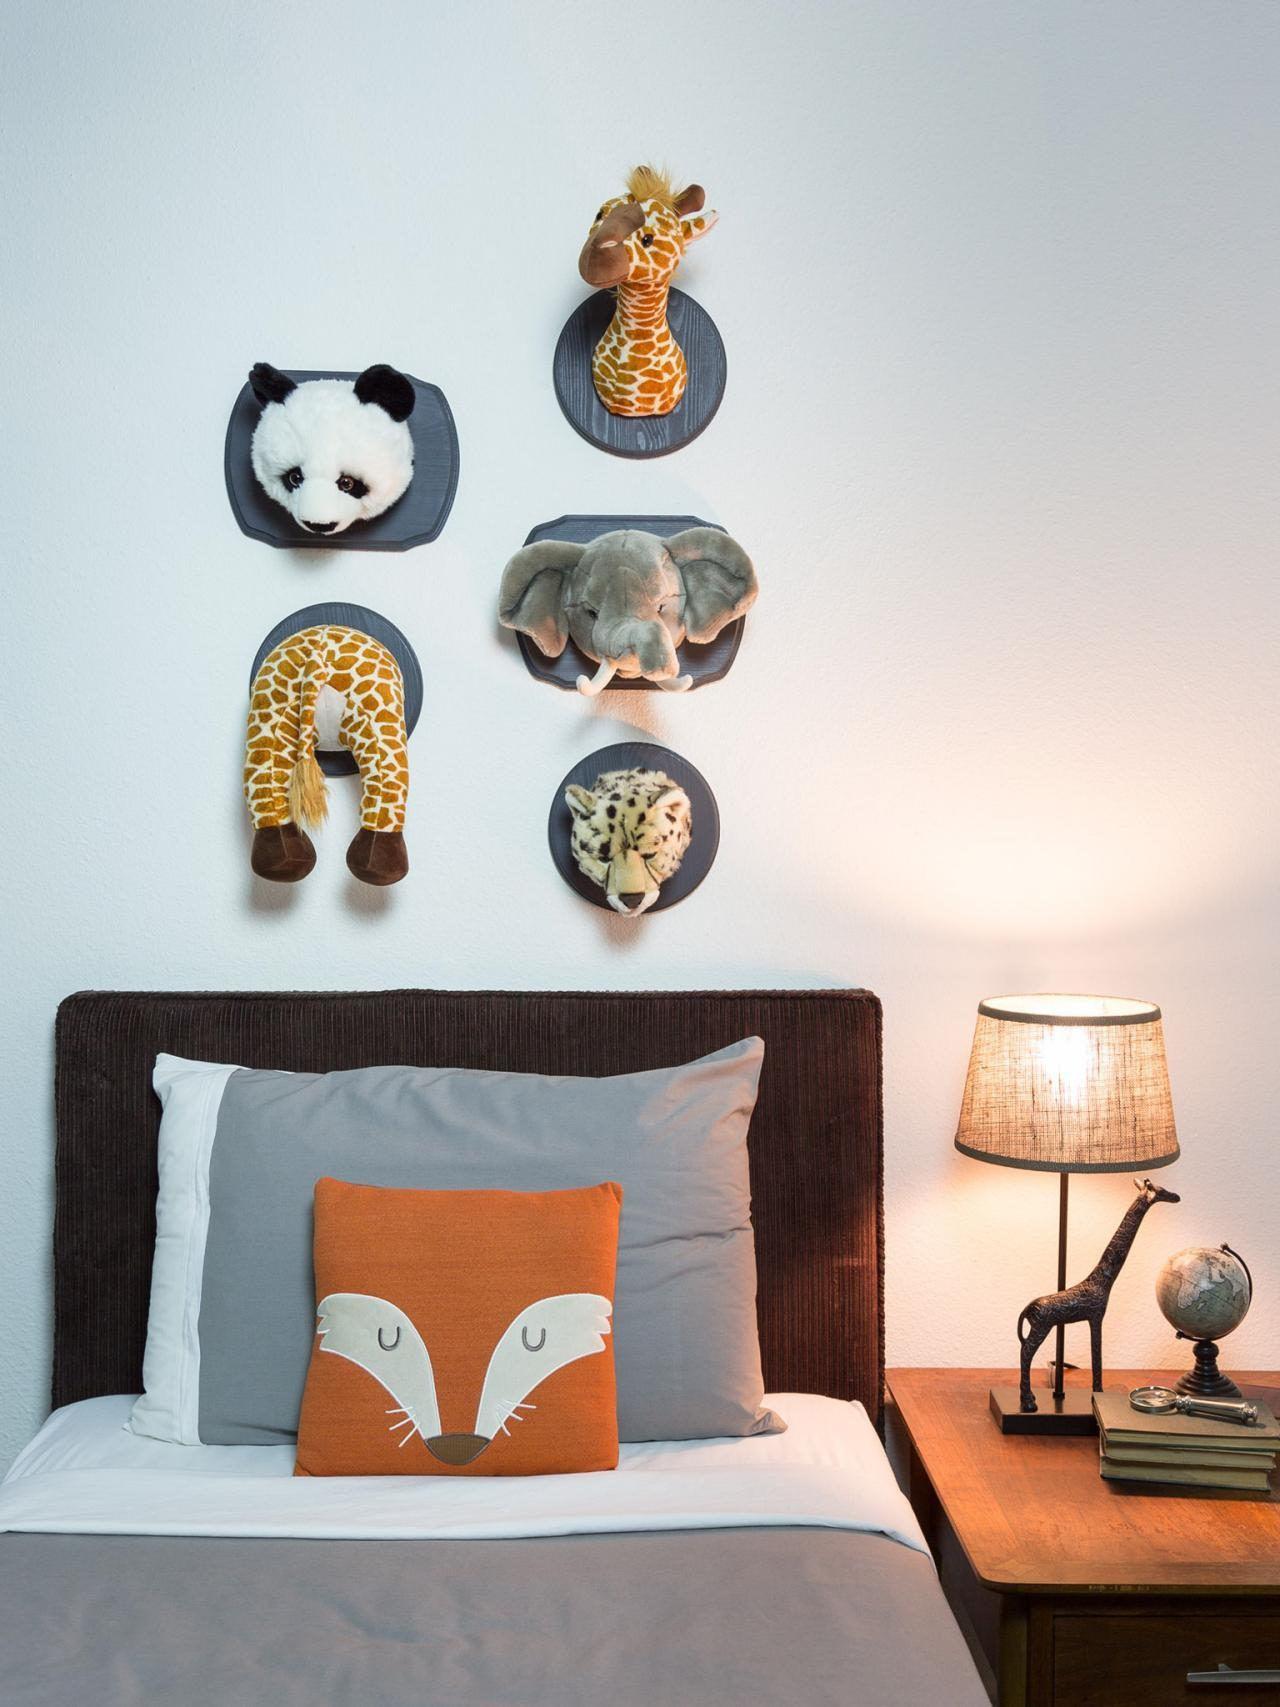 Mount Stuffed Animals Wall Art Diy Network